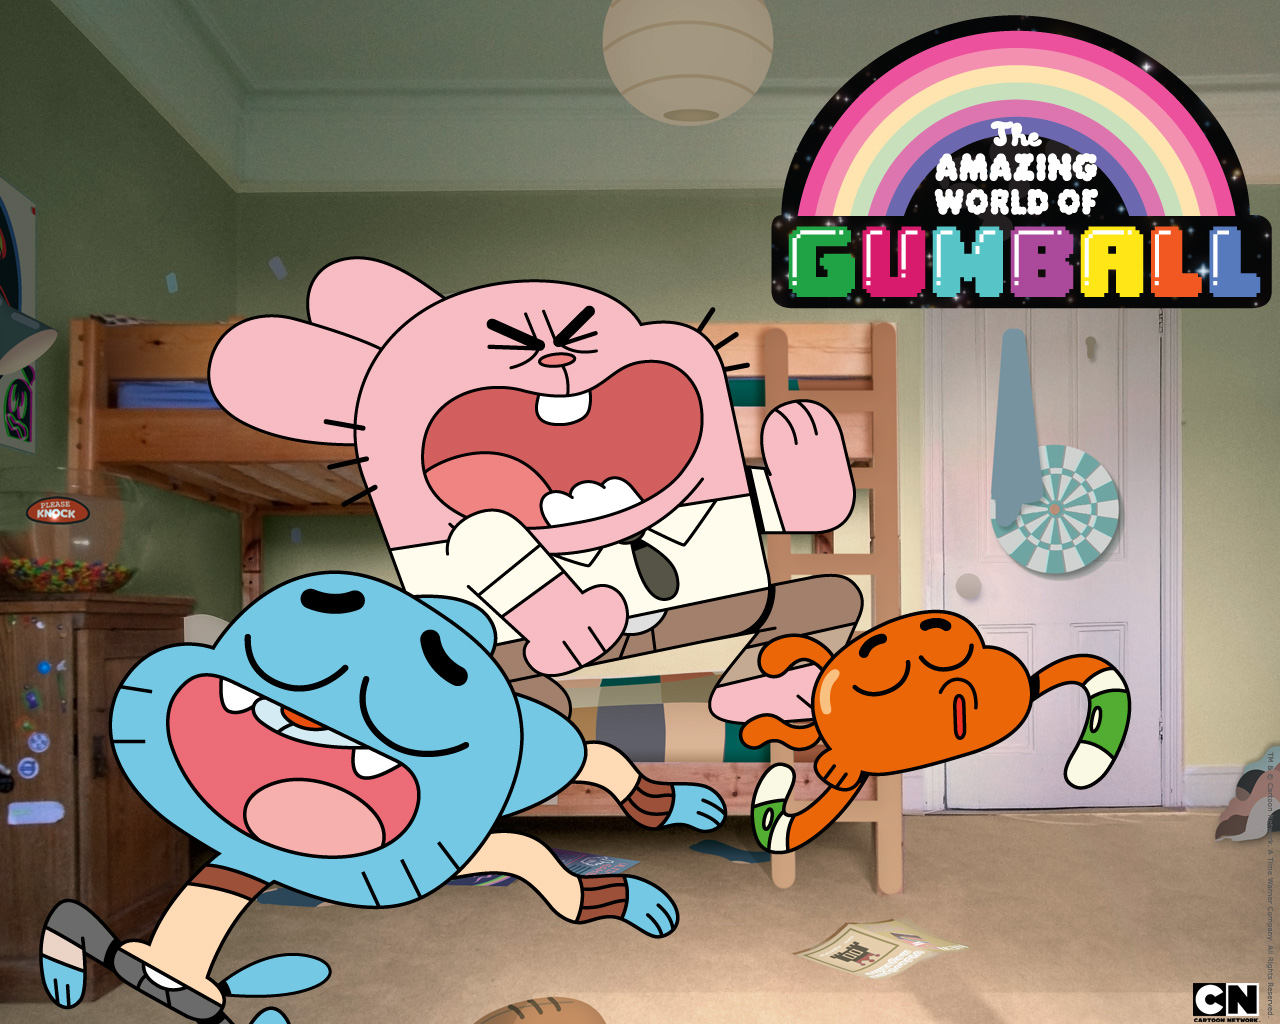 http://images1.wikia.nocookie.net/__cb20121215070911/theamazingworldofgumball/images/3/30/Richard-Gumball-and-Darwin-the-amazing-world-of-gumball-23721561-1280-1024.jpeg